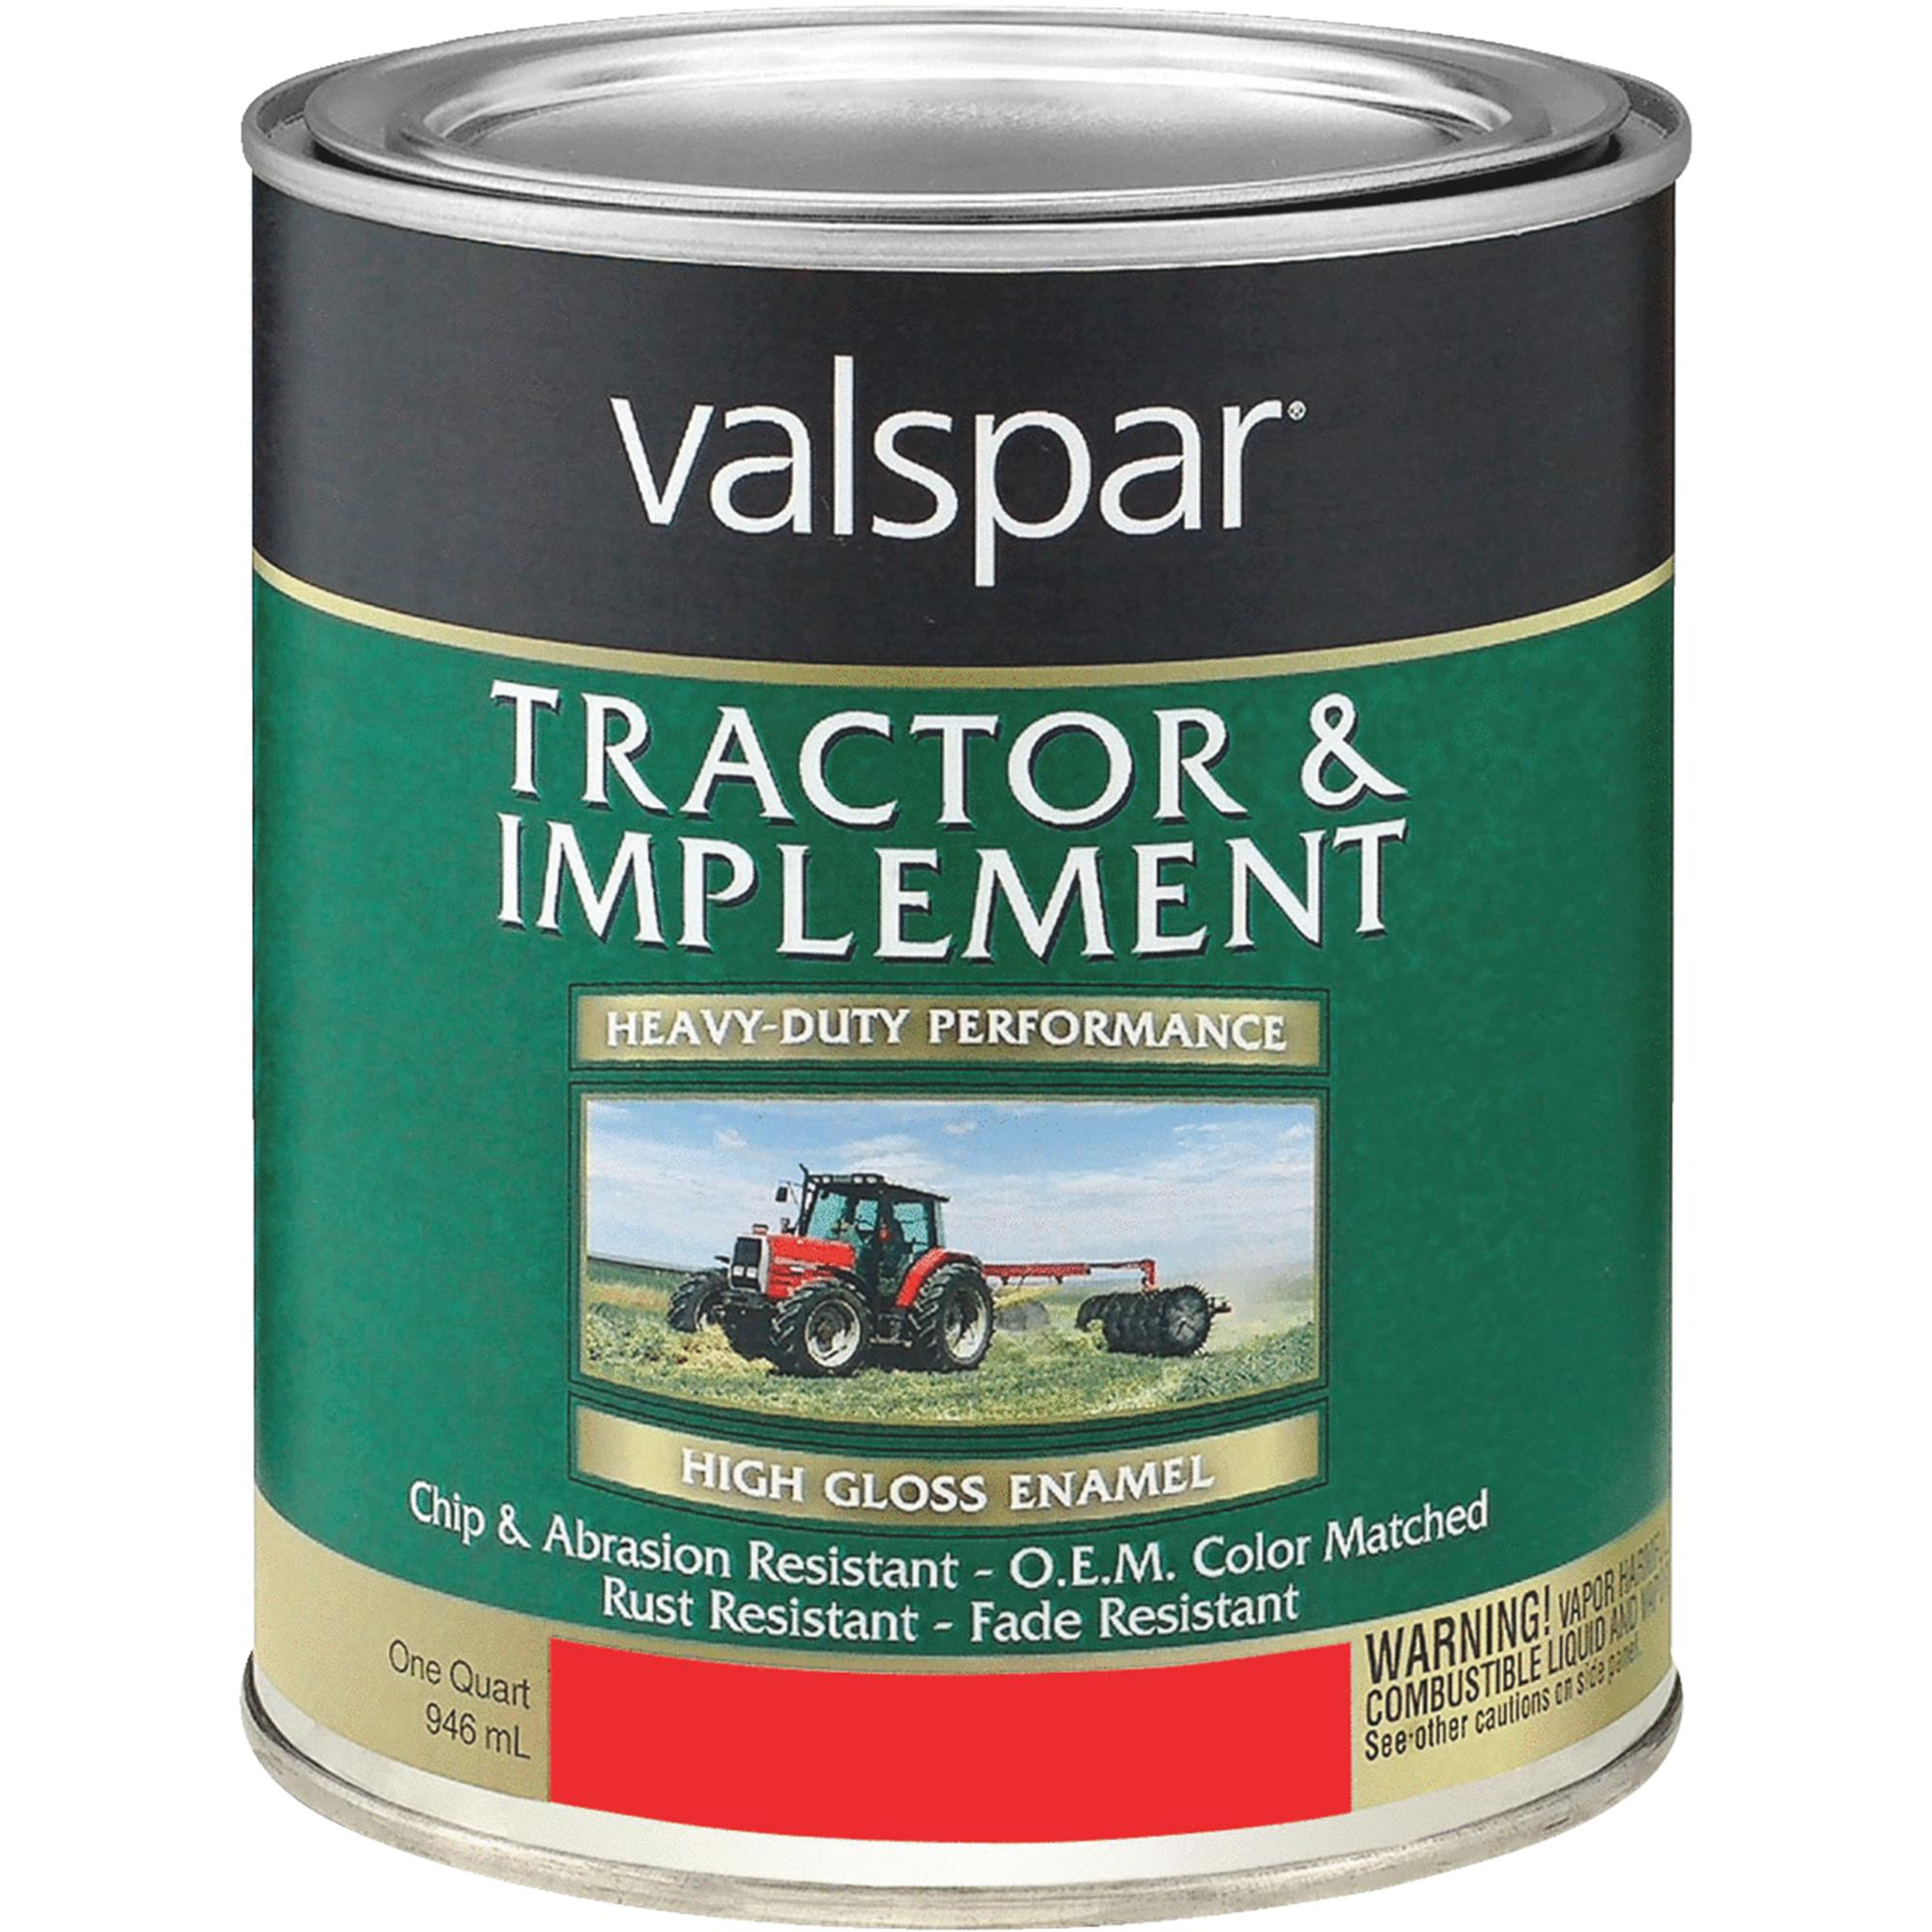 Valspar Tractor & Implement Enamel